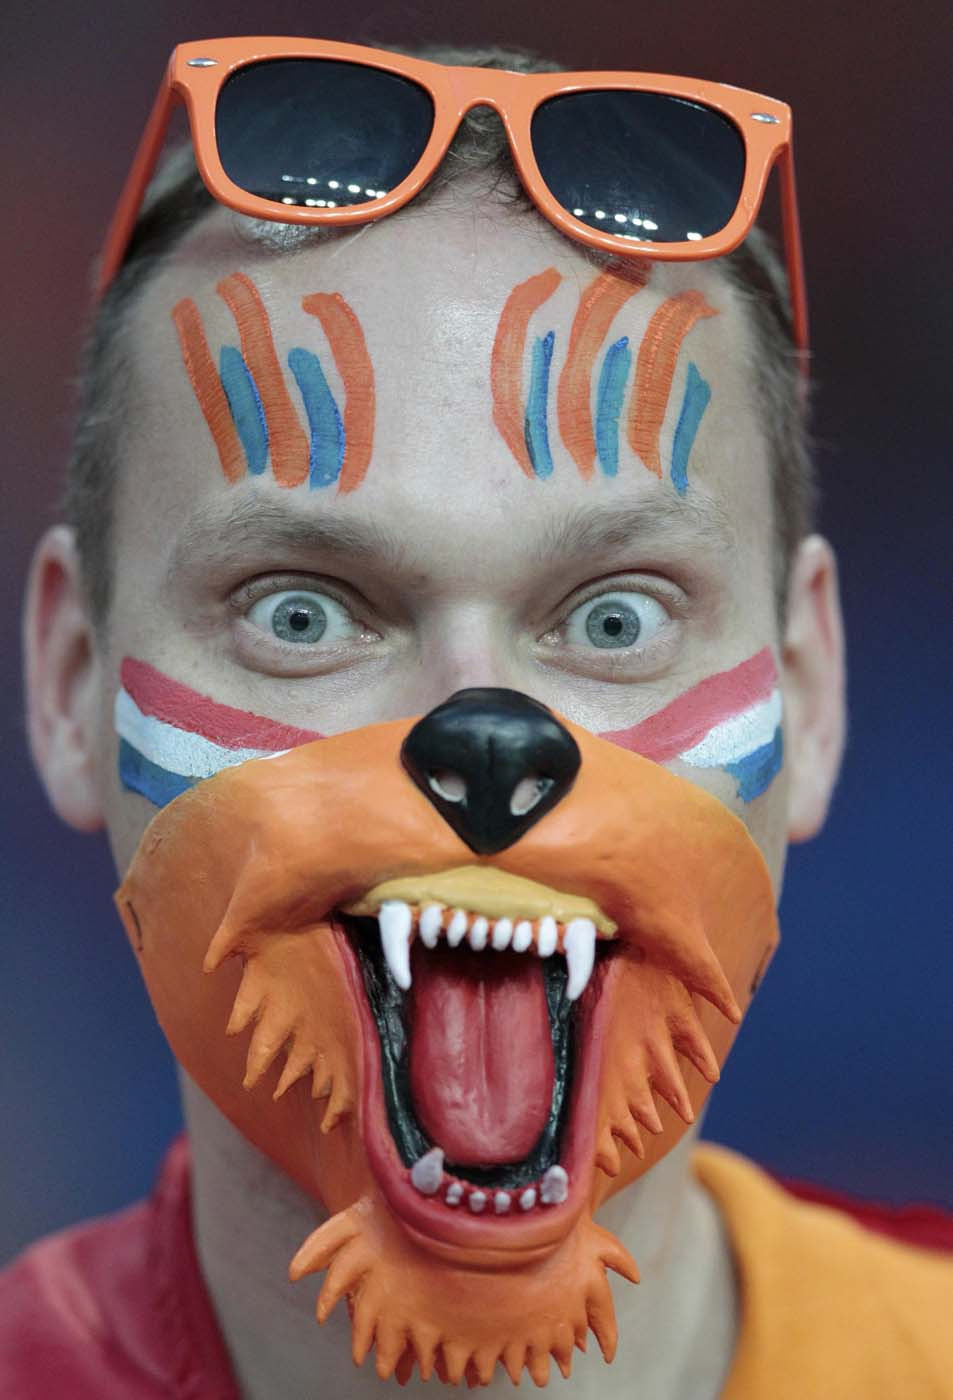 A Netherlands fans waits for the begin of the Group B Euro 2012 soccer match against Portugal at Metalist stadium in Kharkiv, June 17, 2012. (Vasily Fedosenko/Reuters)